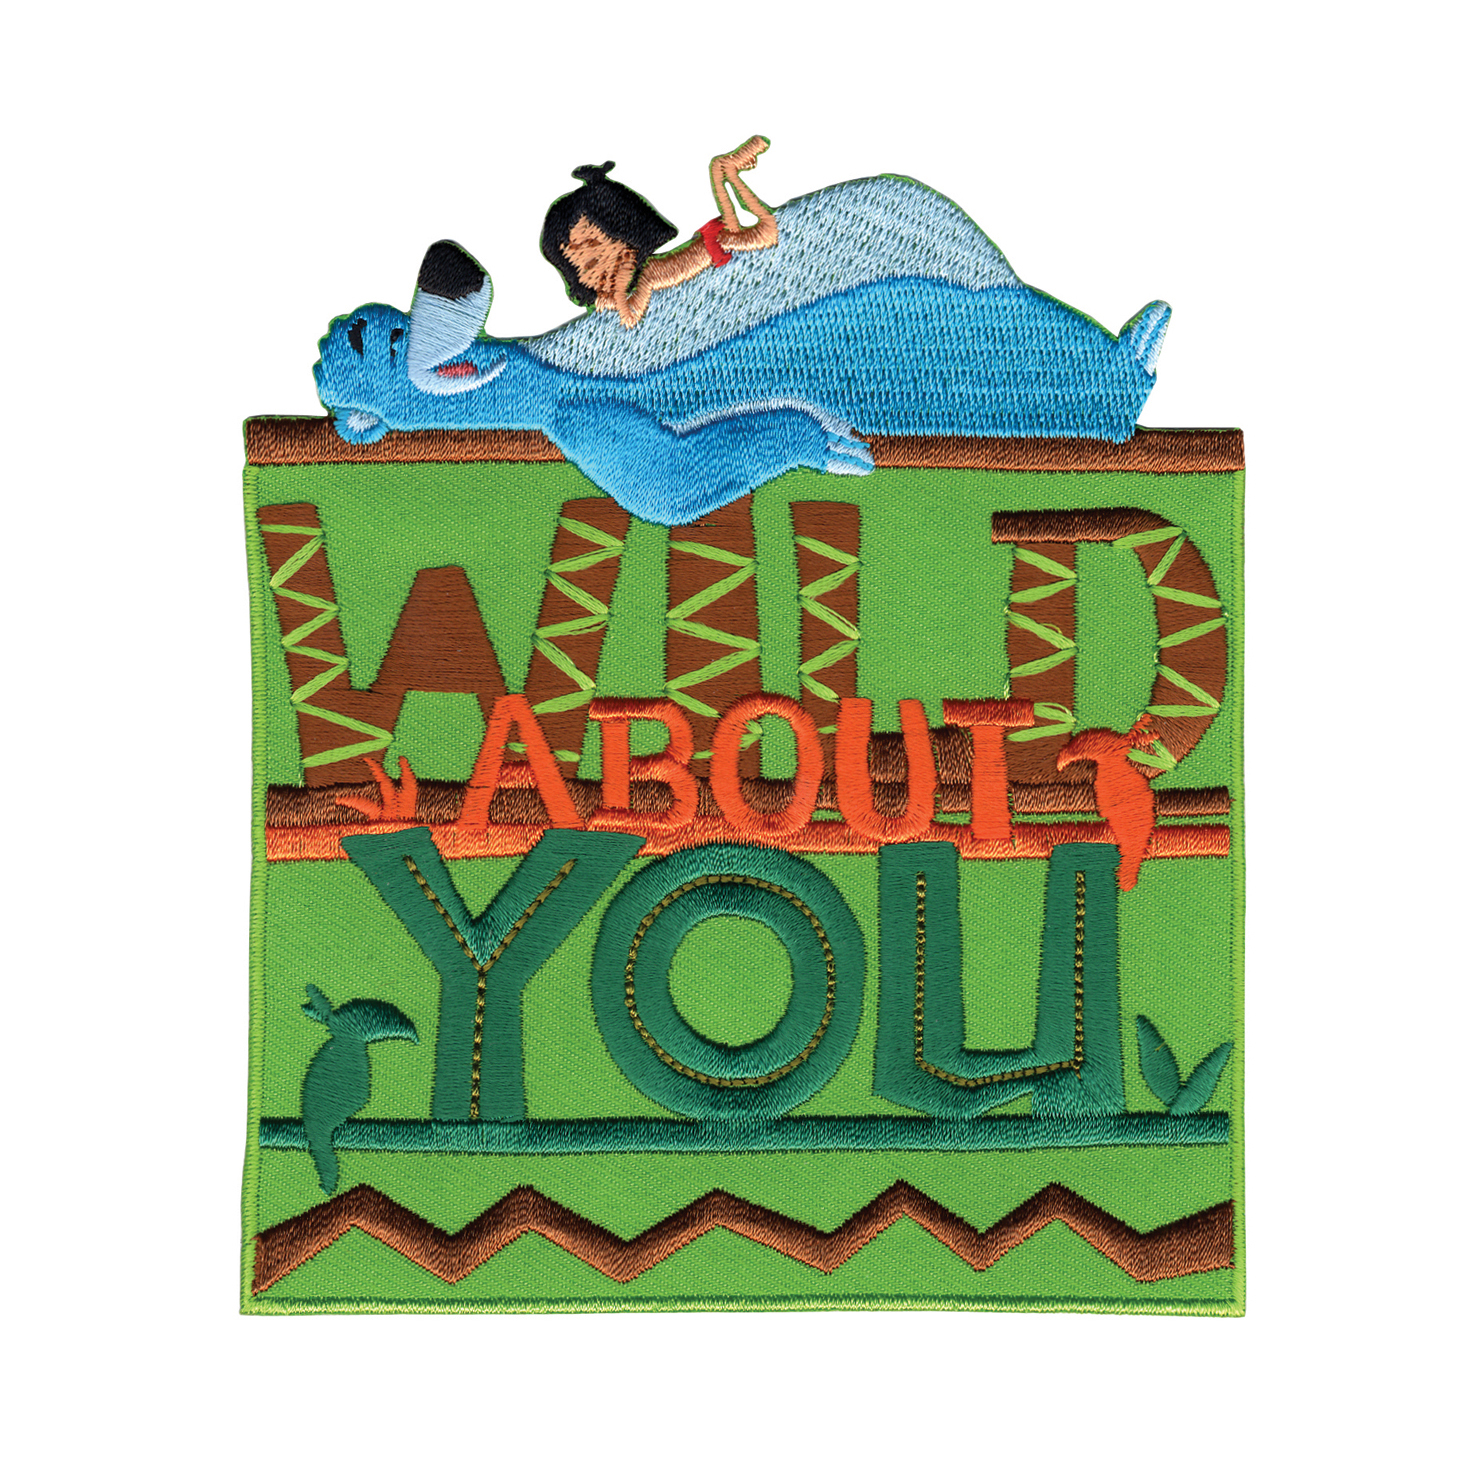 Disney Jungle Book Iron On Applique Wild About You by Notions Marketing in USA